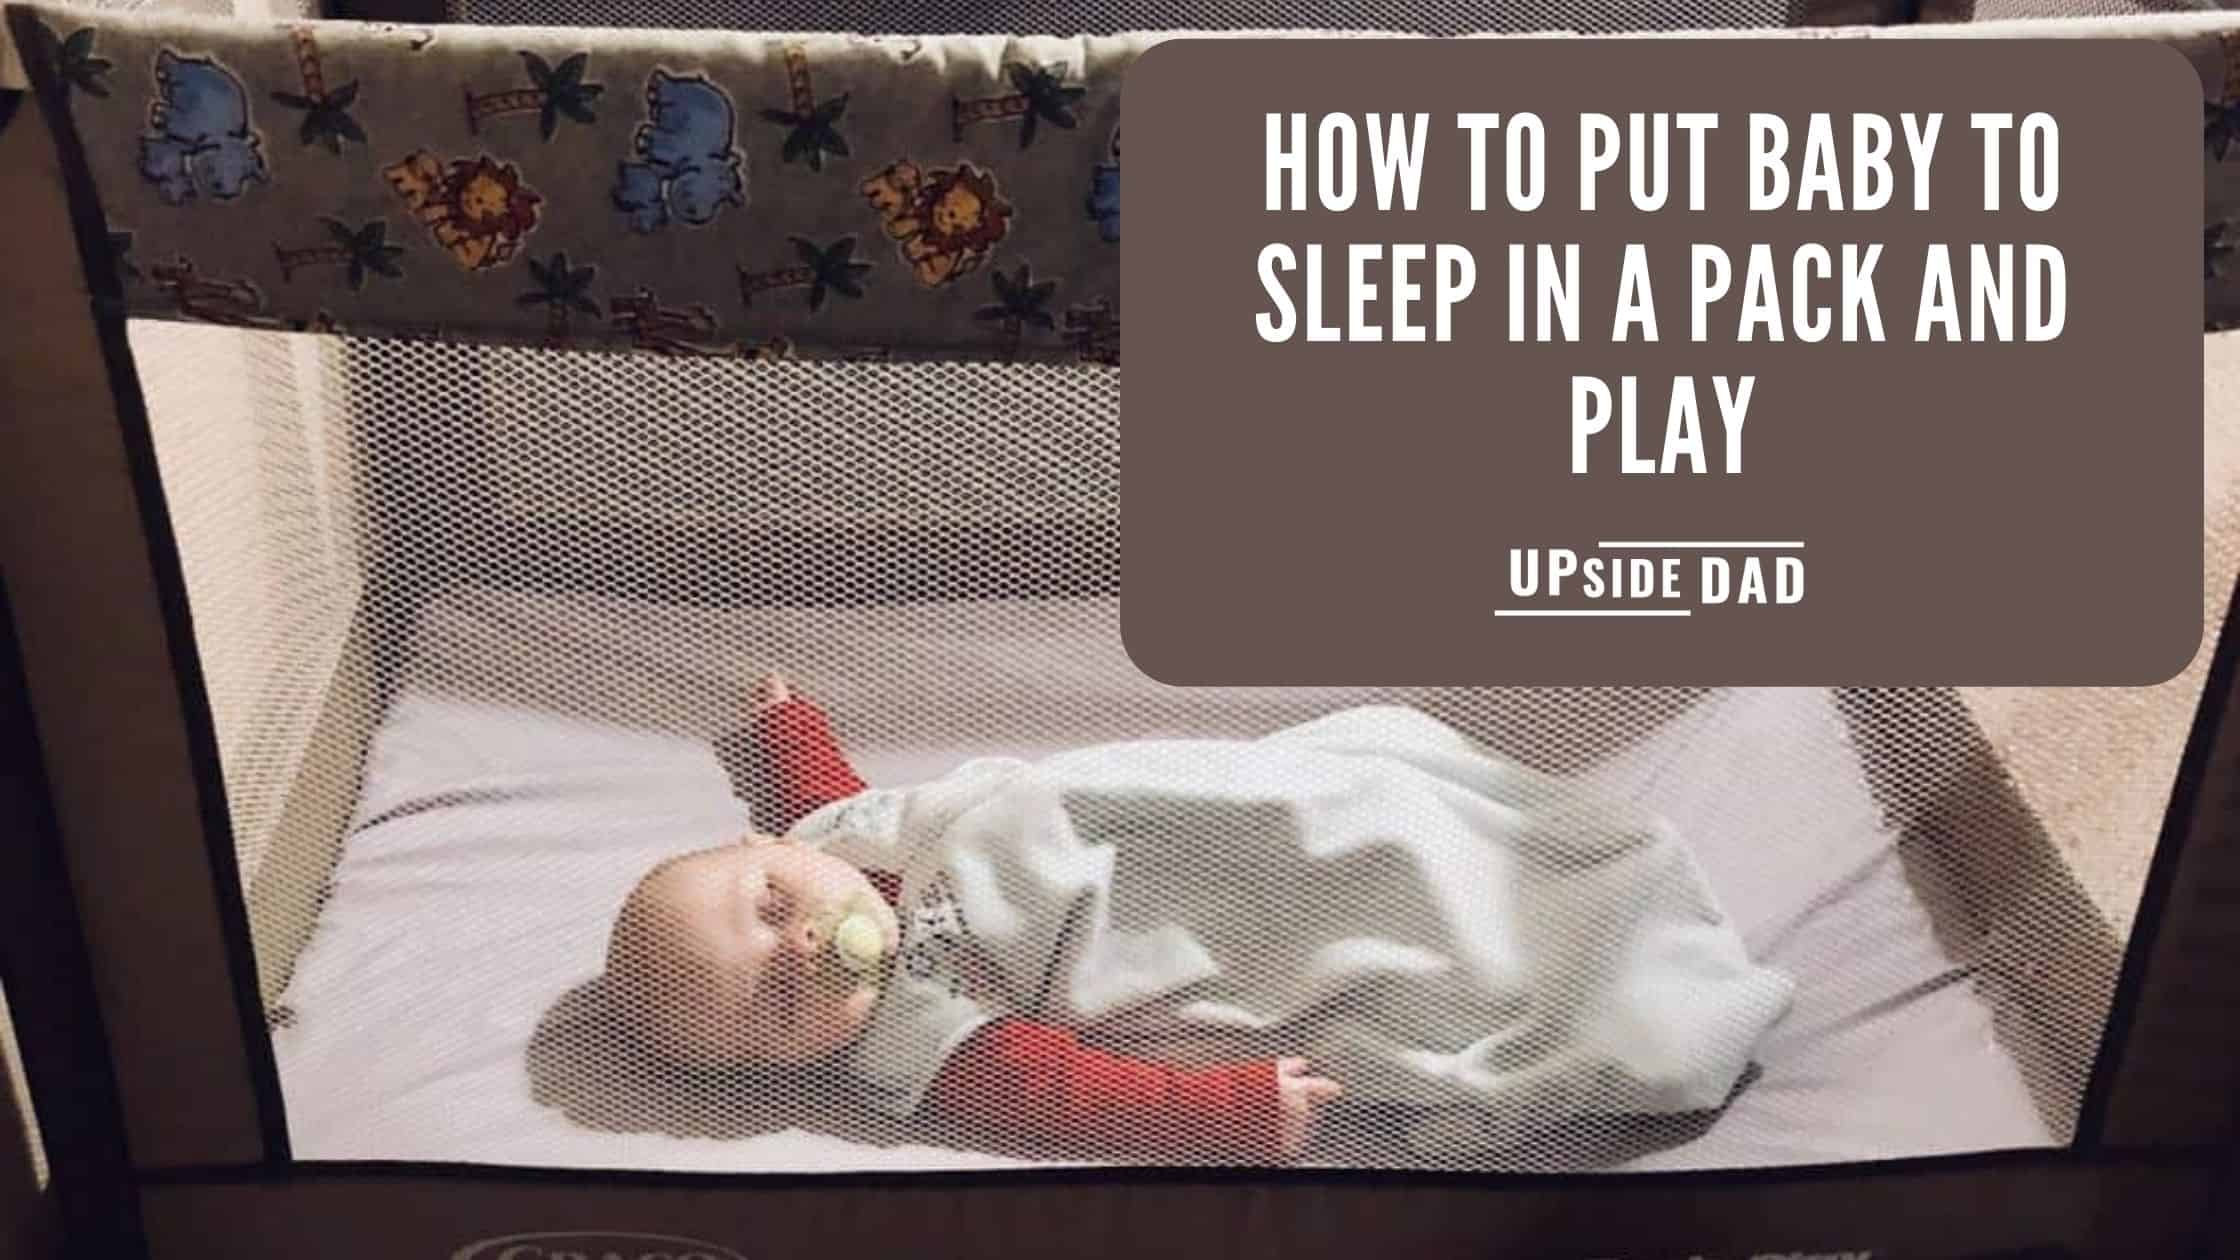 How to put baby to sleep in a pack and play